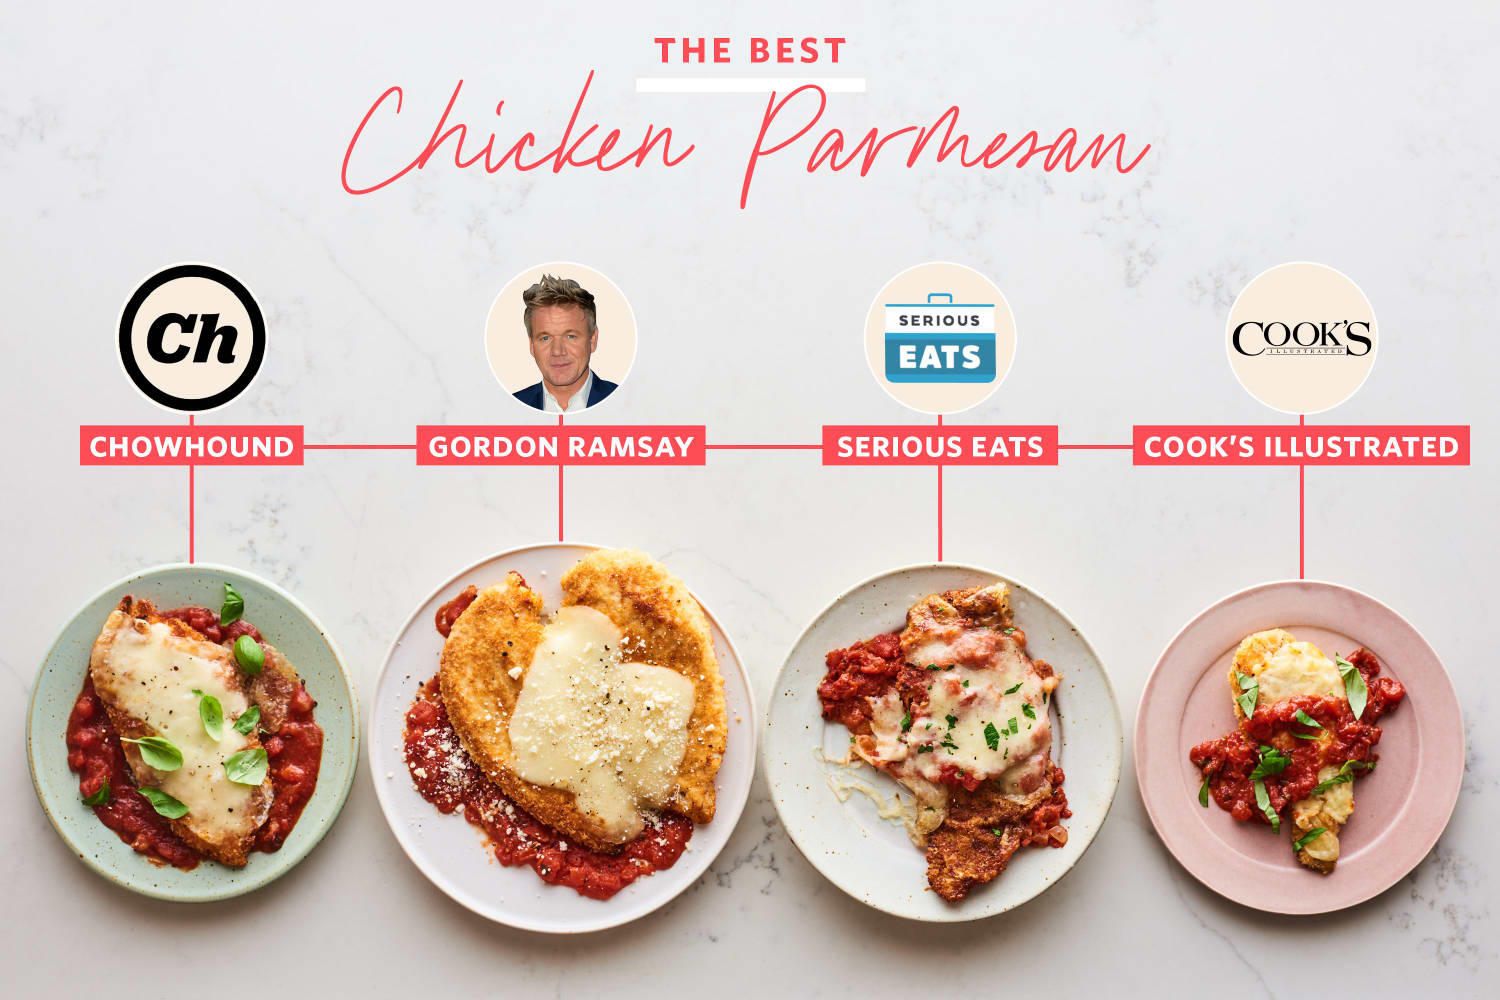 We Tested 4 Popular Chicken Parmesan Recipes and Found a Clear Winner